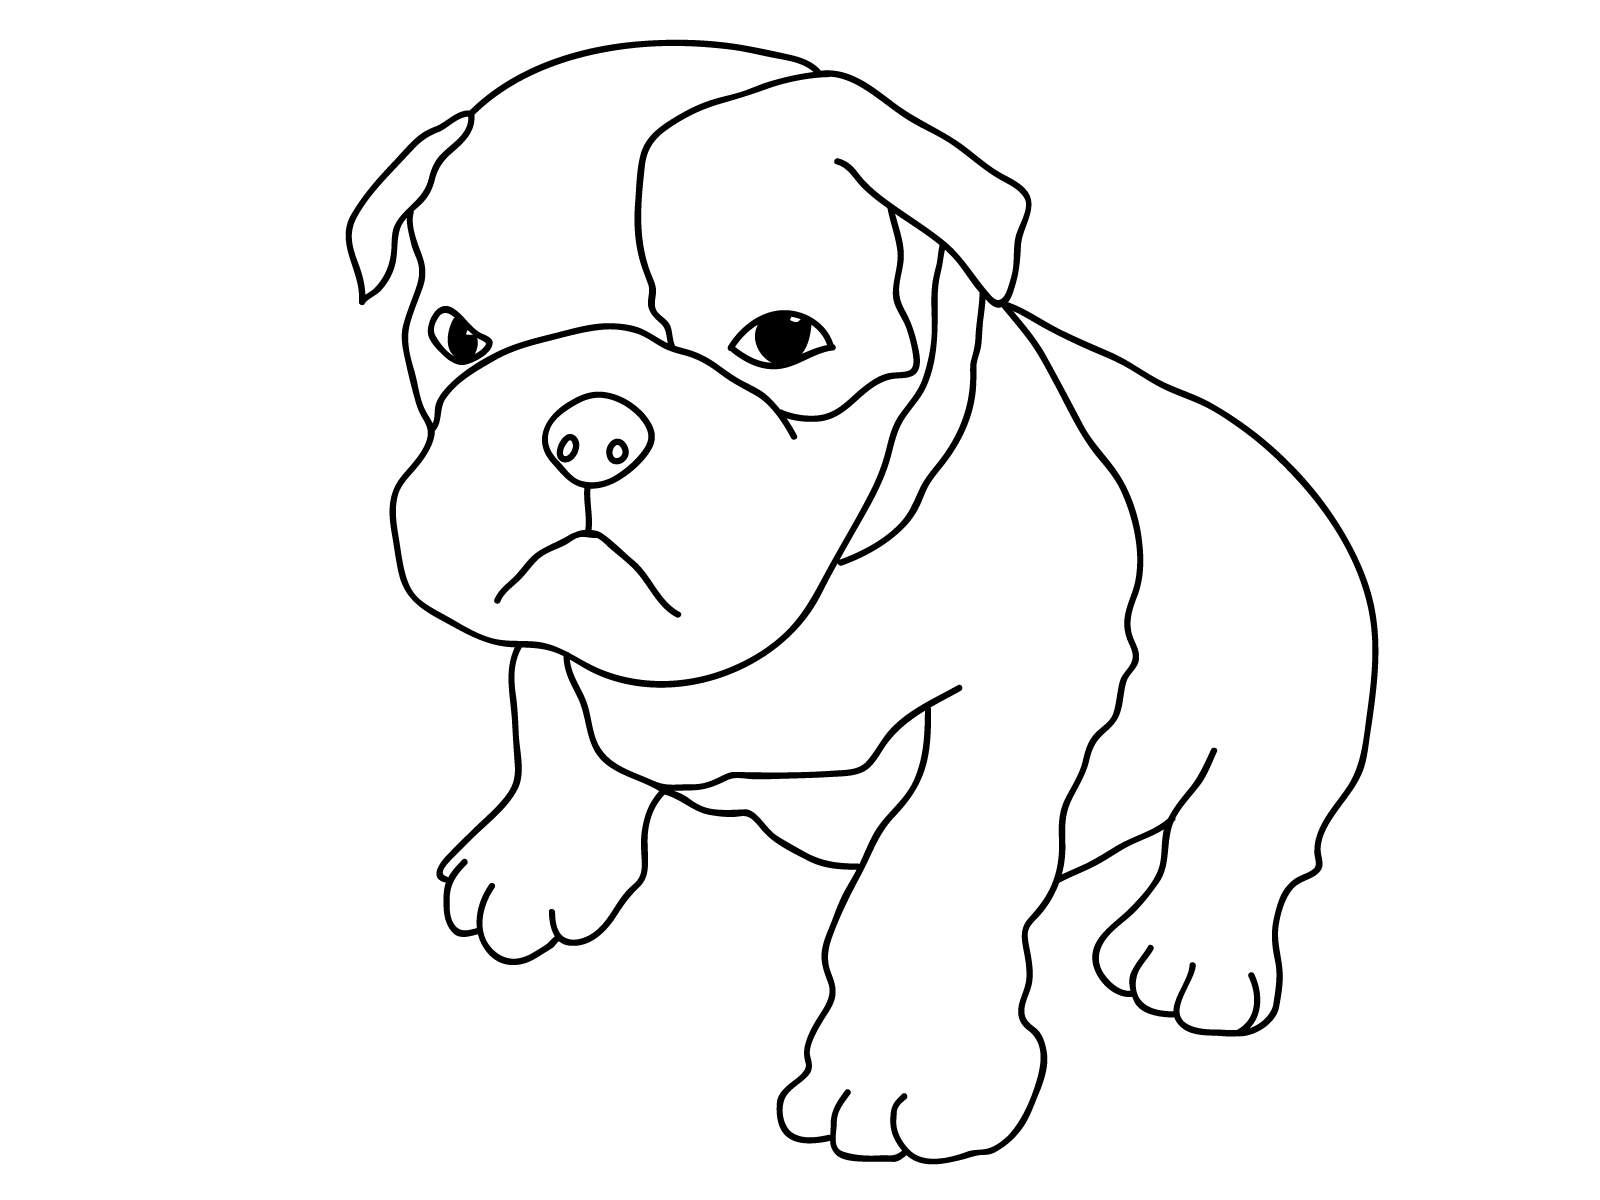 dog pictures to print and colour color pages for kids bulldog free coloring pages for and colour pictures dog print to